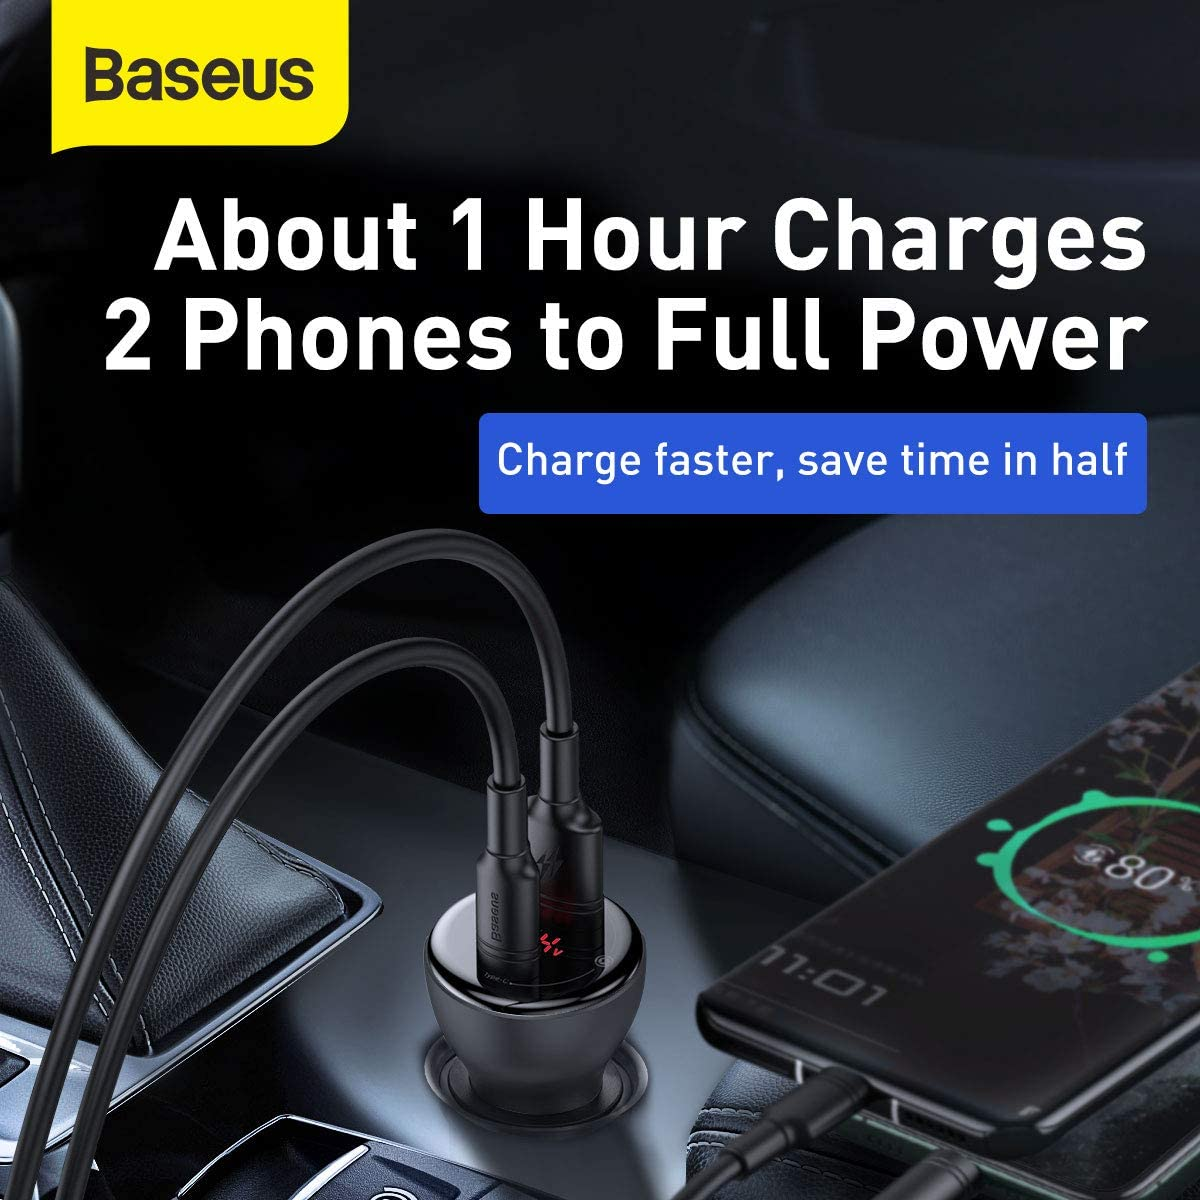 iPad Pro//Air 2 // Mini USB Car Charger Baseus Digital Display PPS Dual Quick Charger Car Charger 45W with Mini Cable Type-C to Type-C 60W for iPhone X // 8//7 // 6s // Plus HTC Note ,LG Nexus